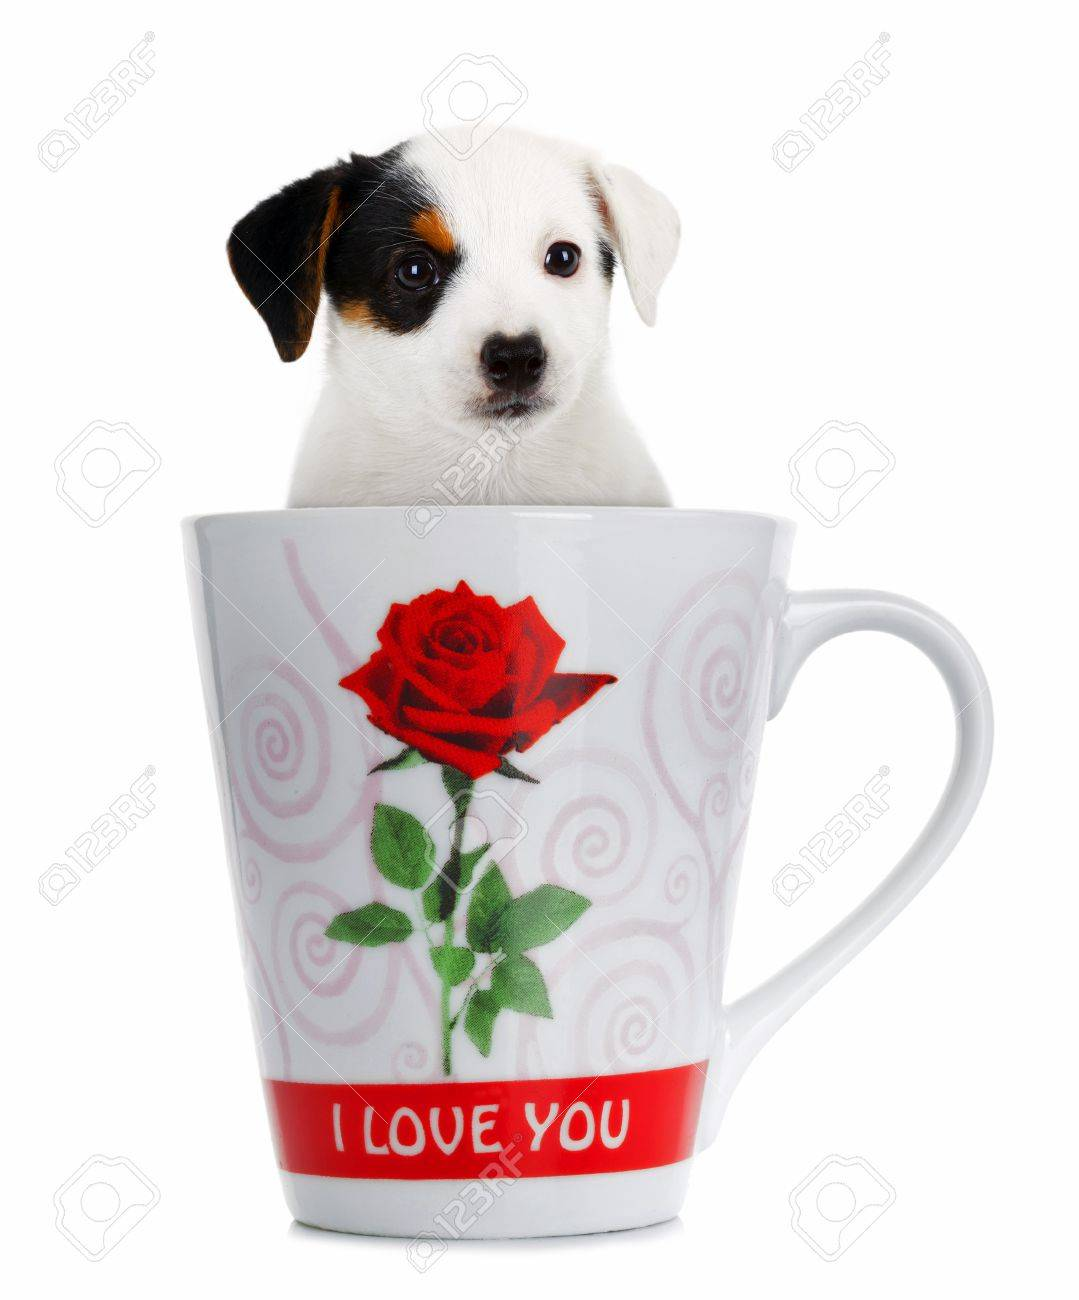 Jack Russell puppy in the cup on white background Stock Photo - 22807829